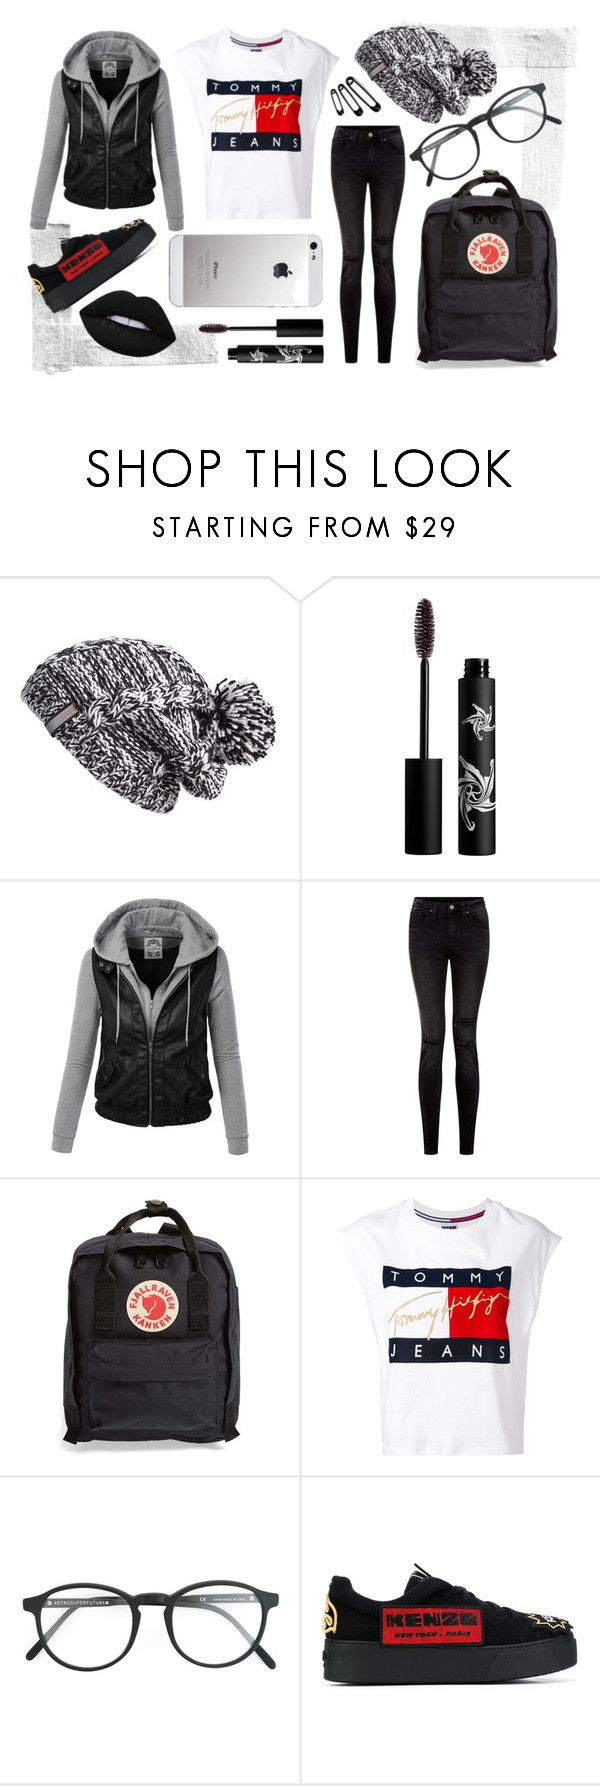 """Monochrome w/ Red"" by alexfreyberg on Polyvore featuring Zella, Rouge Bunny Rouge, Fjällräven, Tommy Hilfiger, RetroSuperFuture, AT&T, Kenzo and Lime Crime"